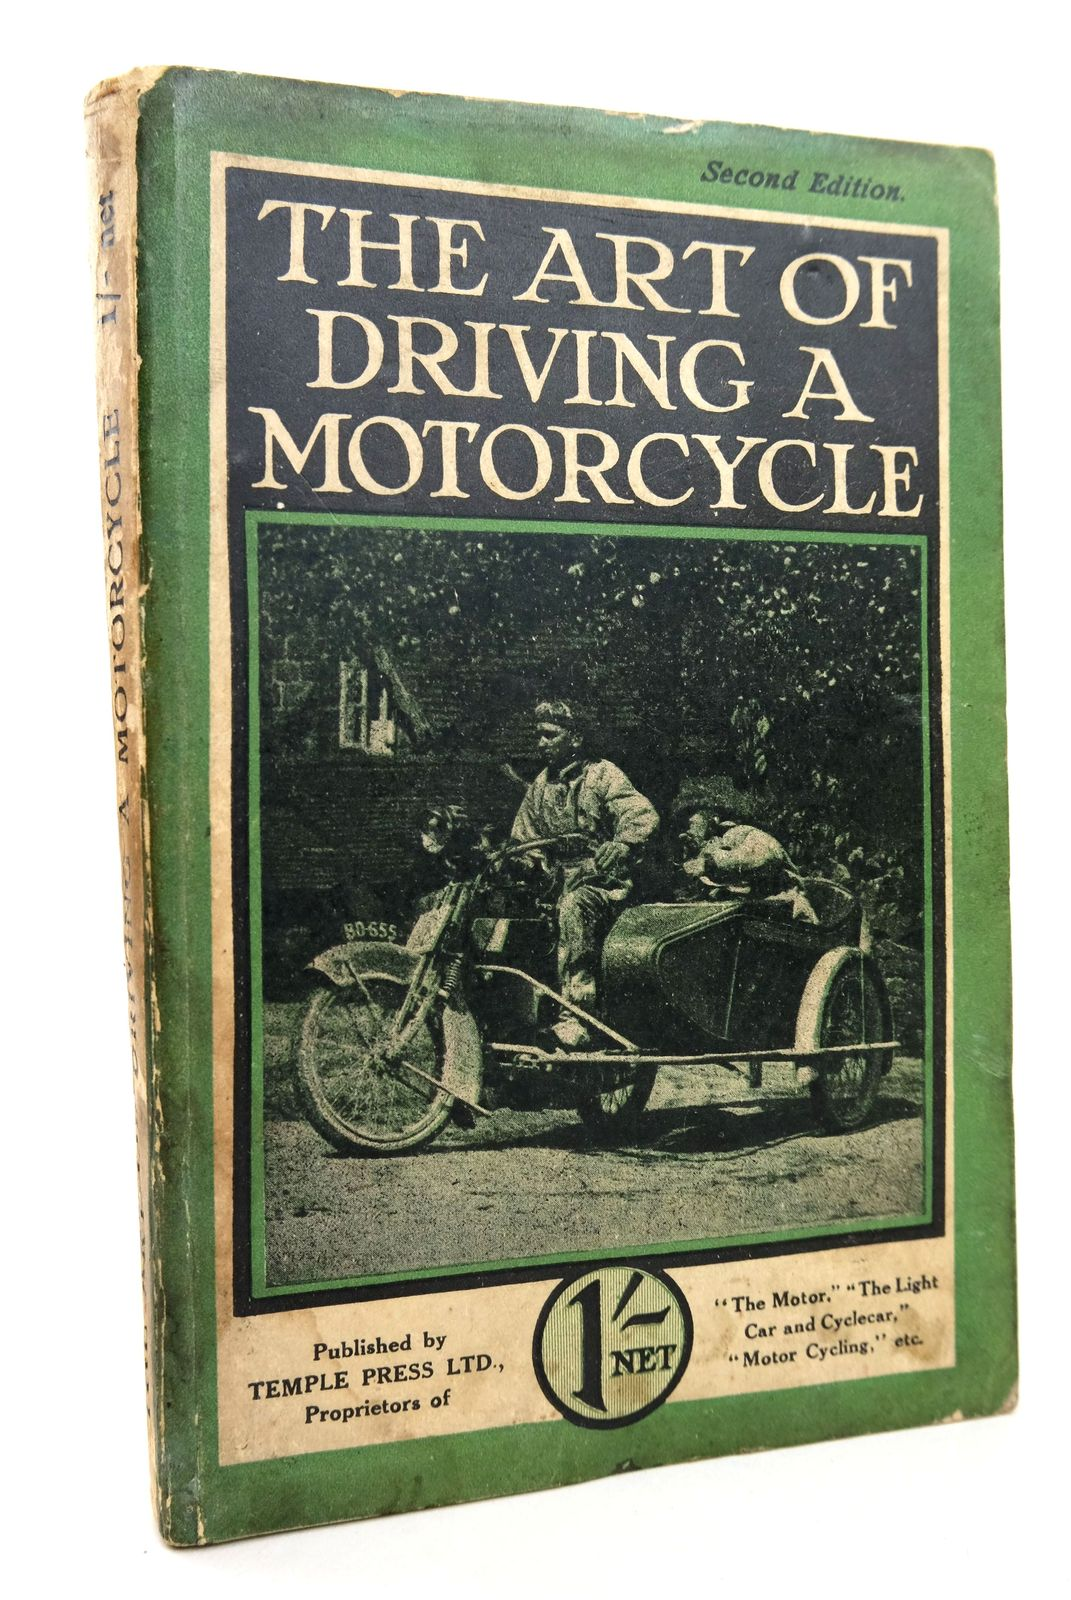 Photo of THE ART OF DRIVING A MOTORCYCLE published by Temple Press Limited (STOCK CODE: 1818717)  for sale by Stella & Rose's Books